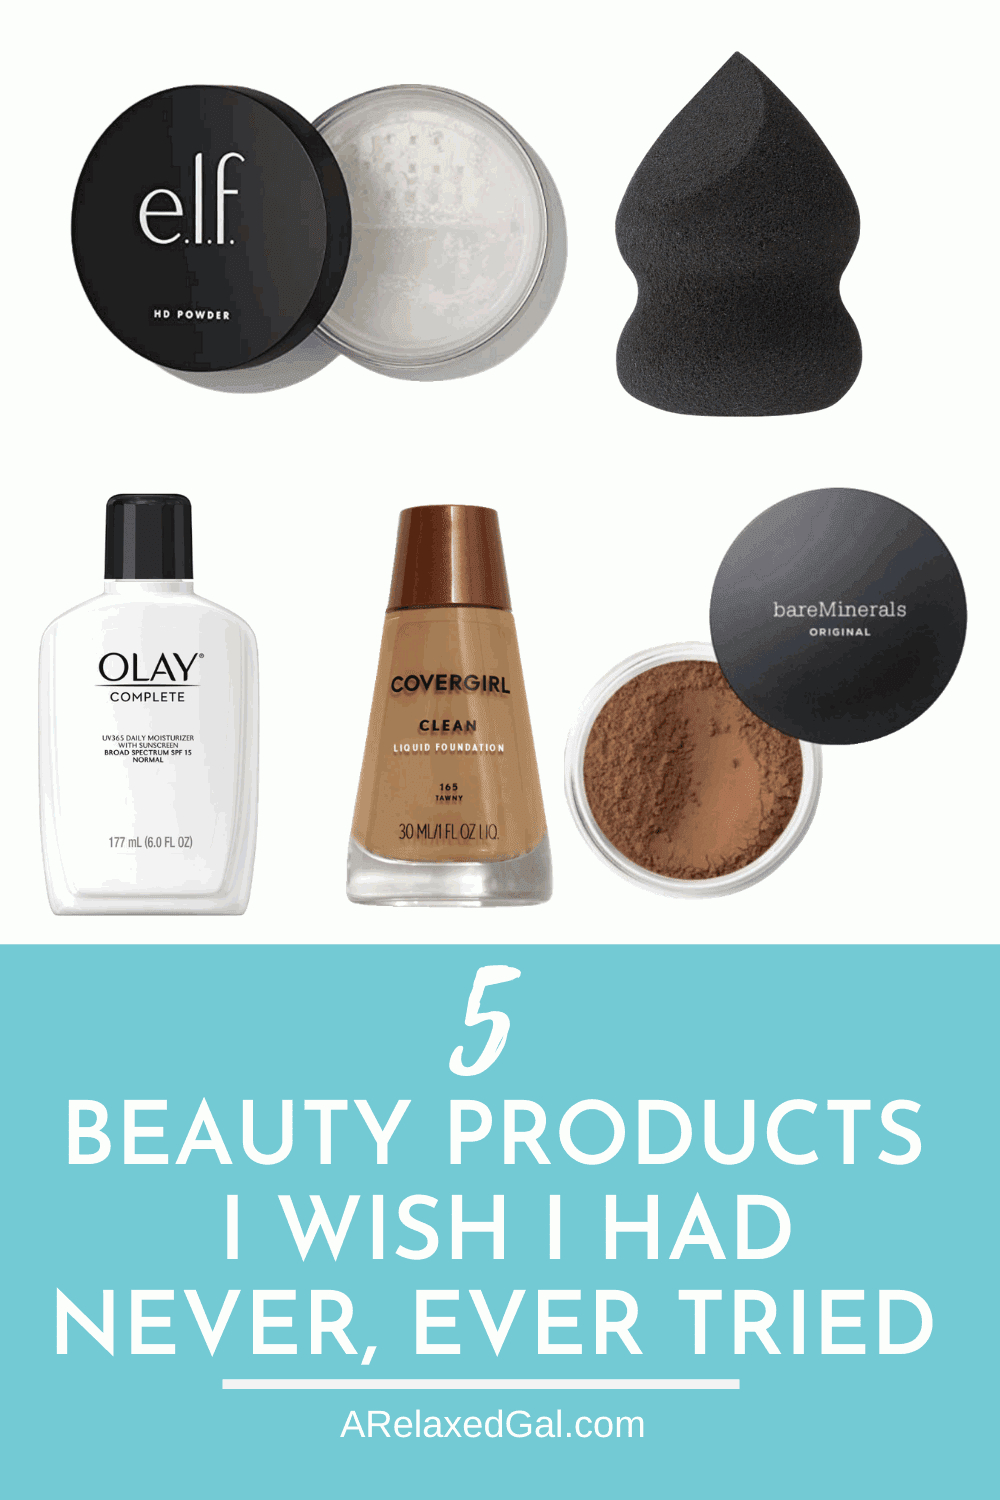 Beauty products I never should have tried | A Relaxed Gal